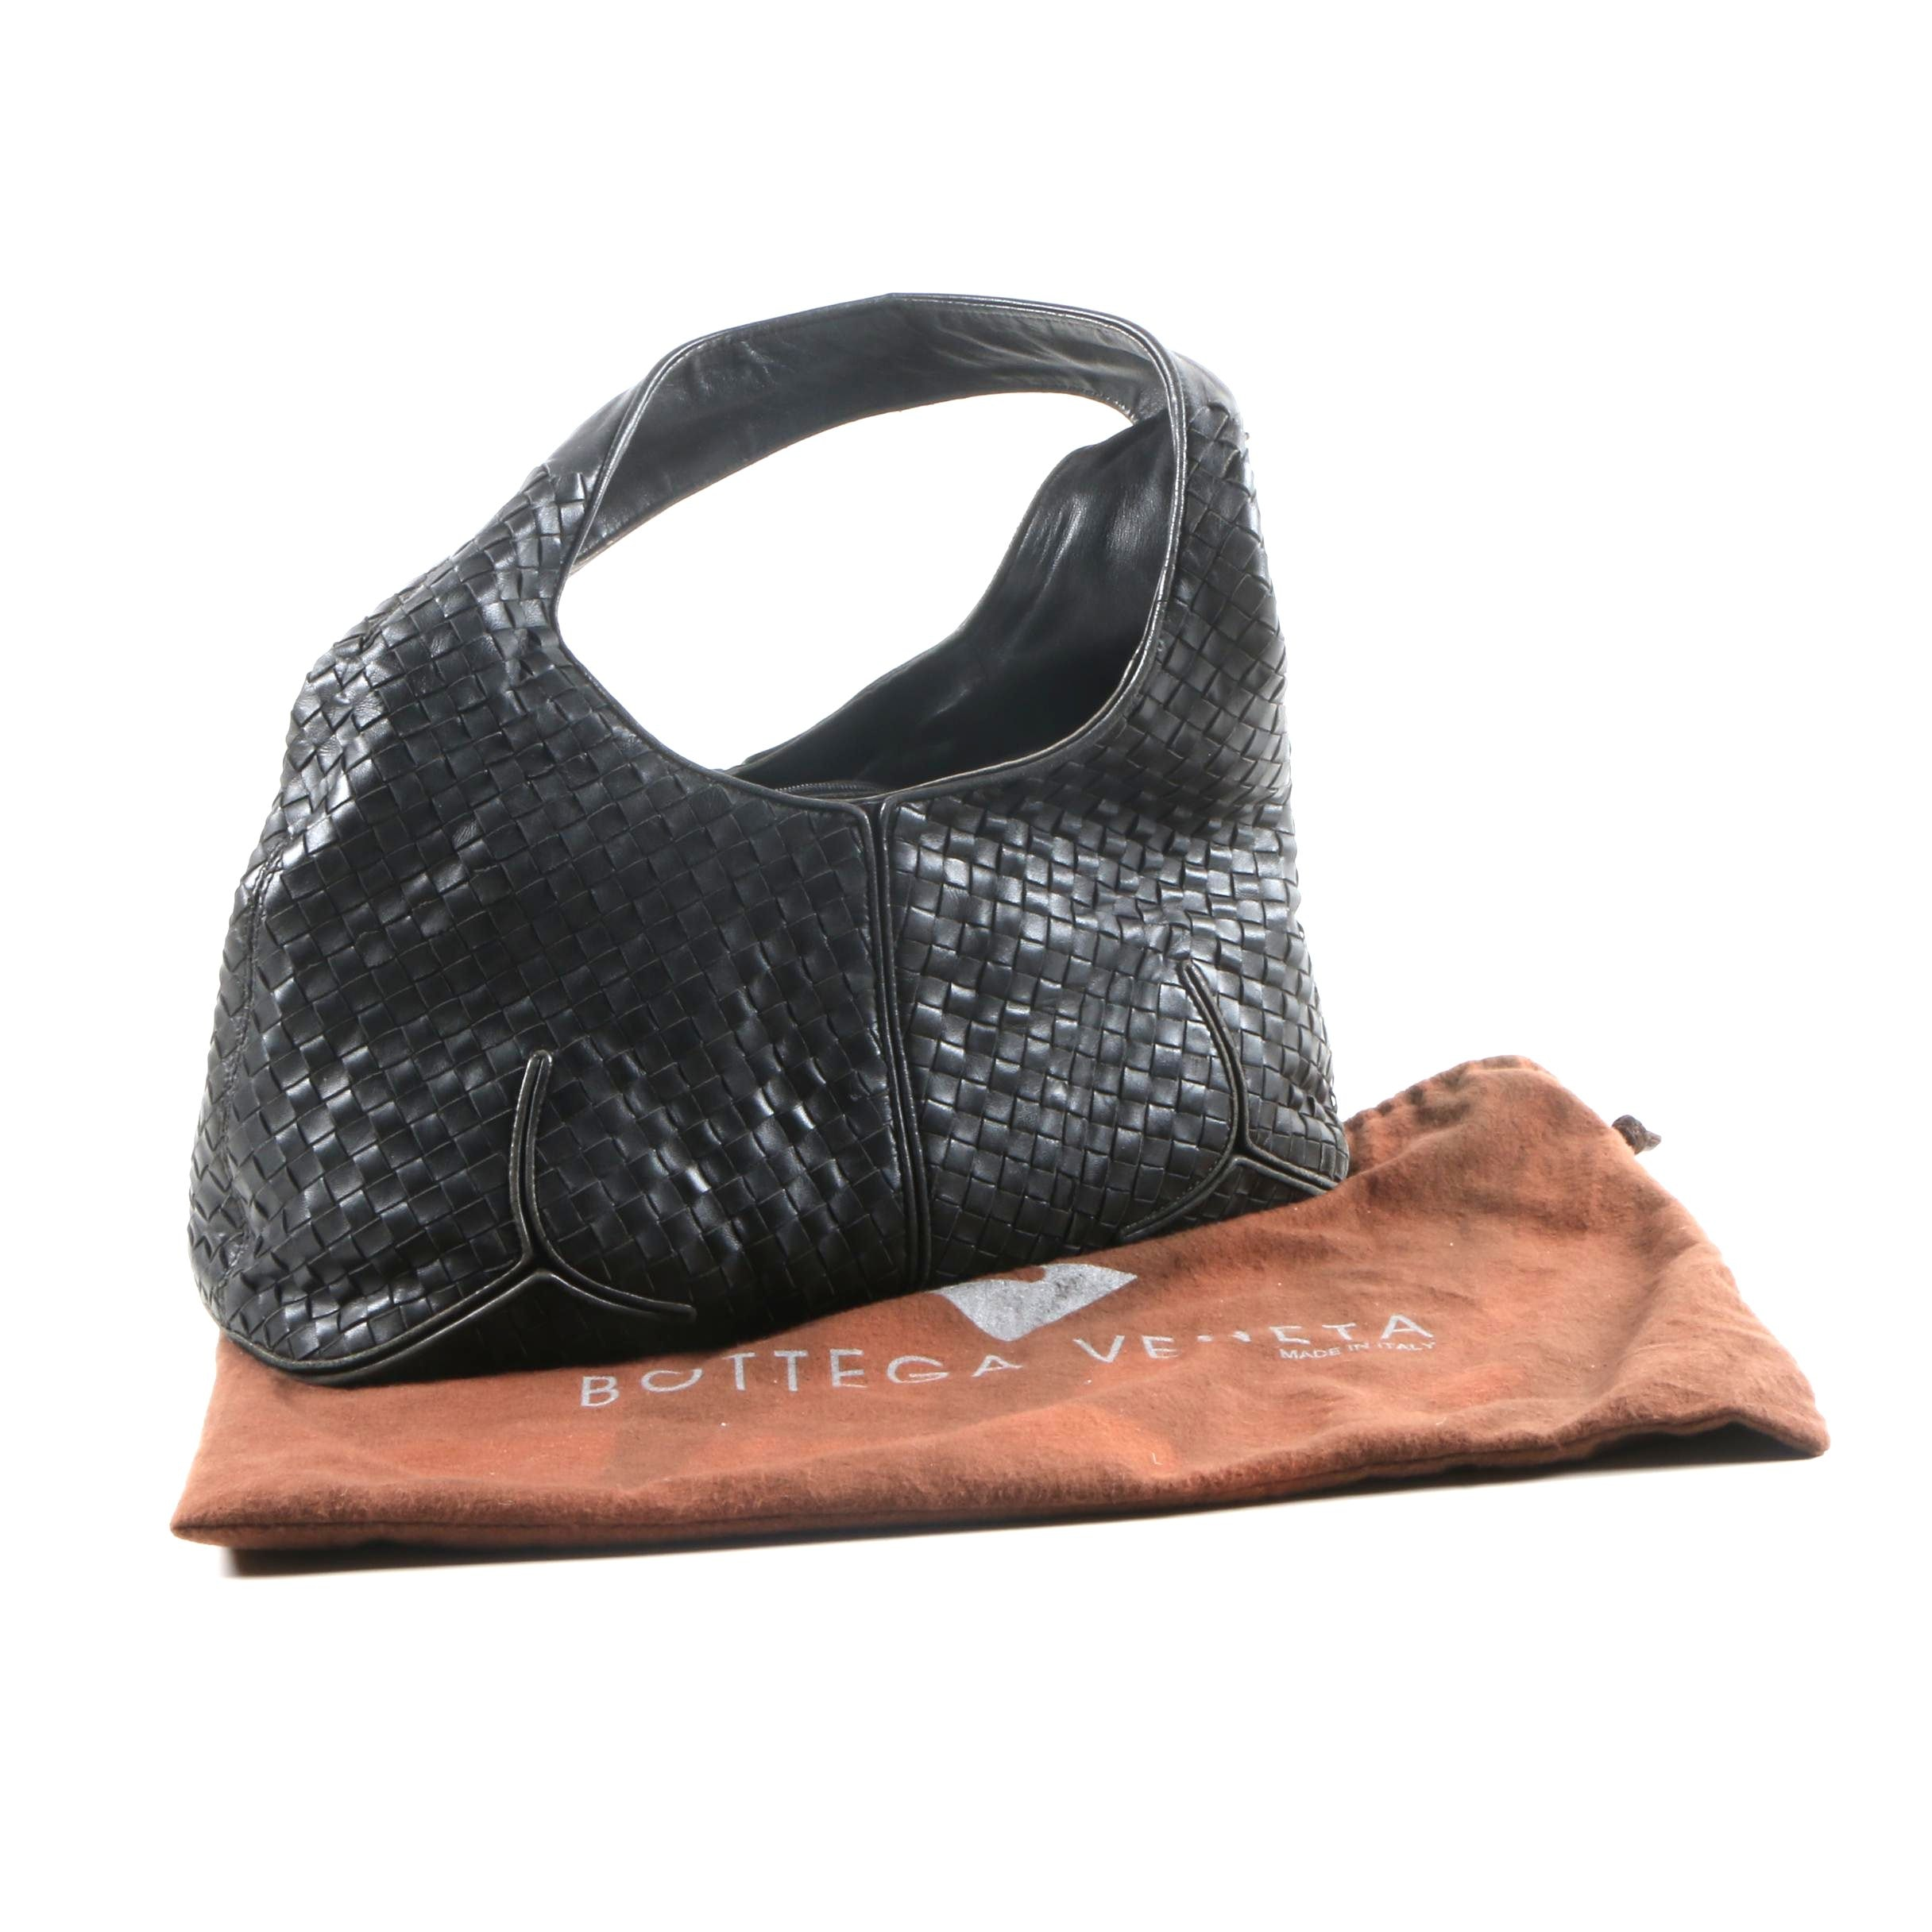 Bottega Veneta Black Hobo Bag